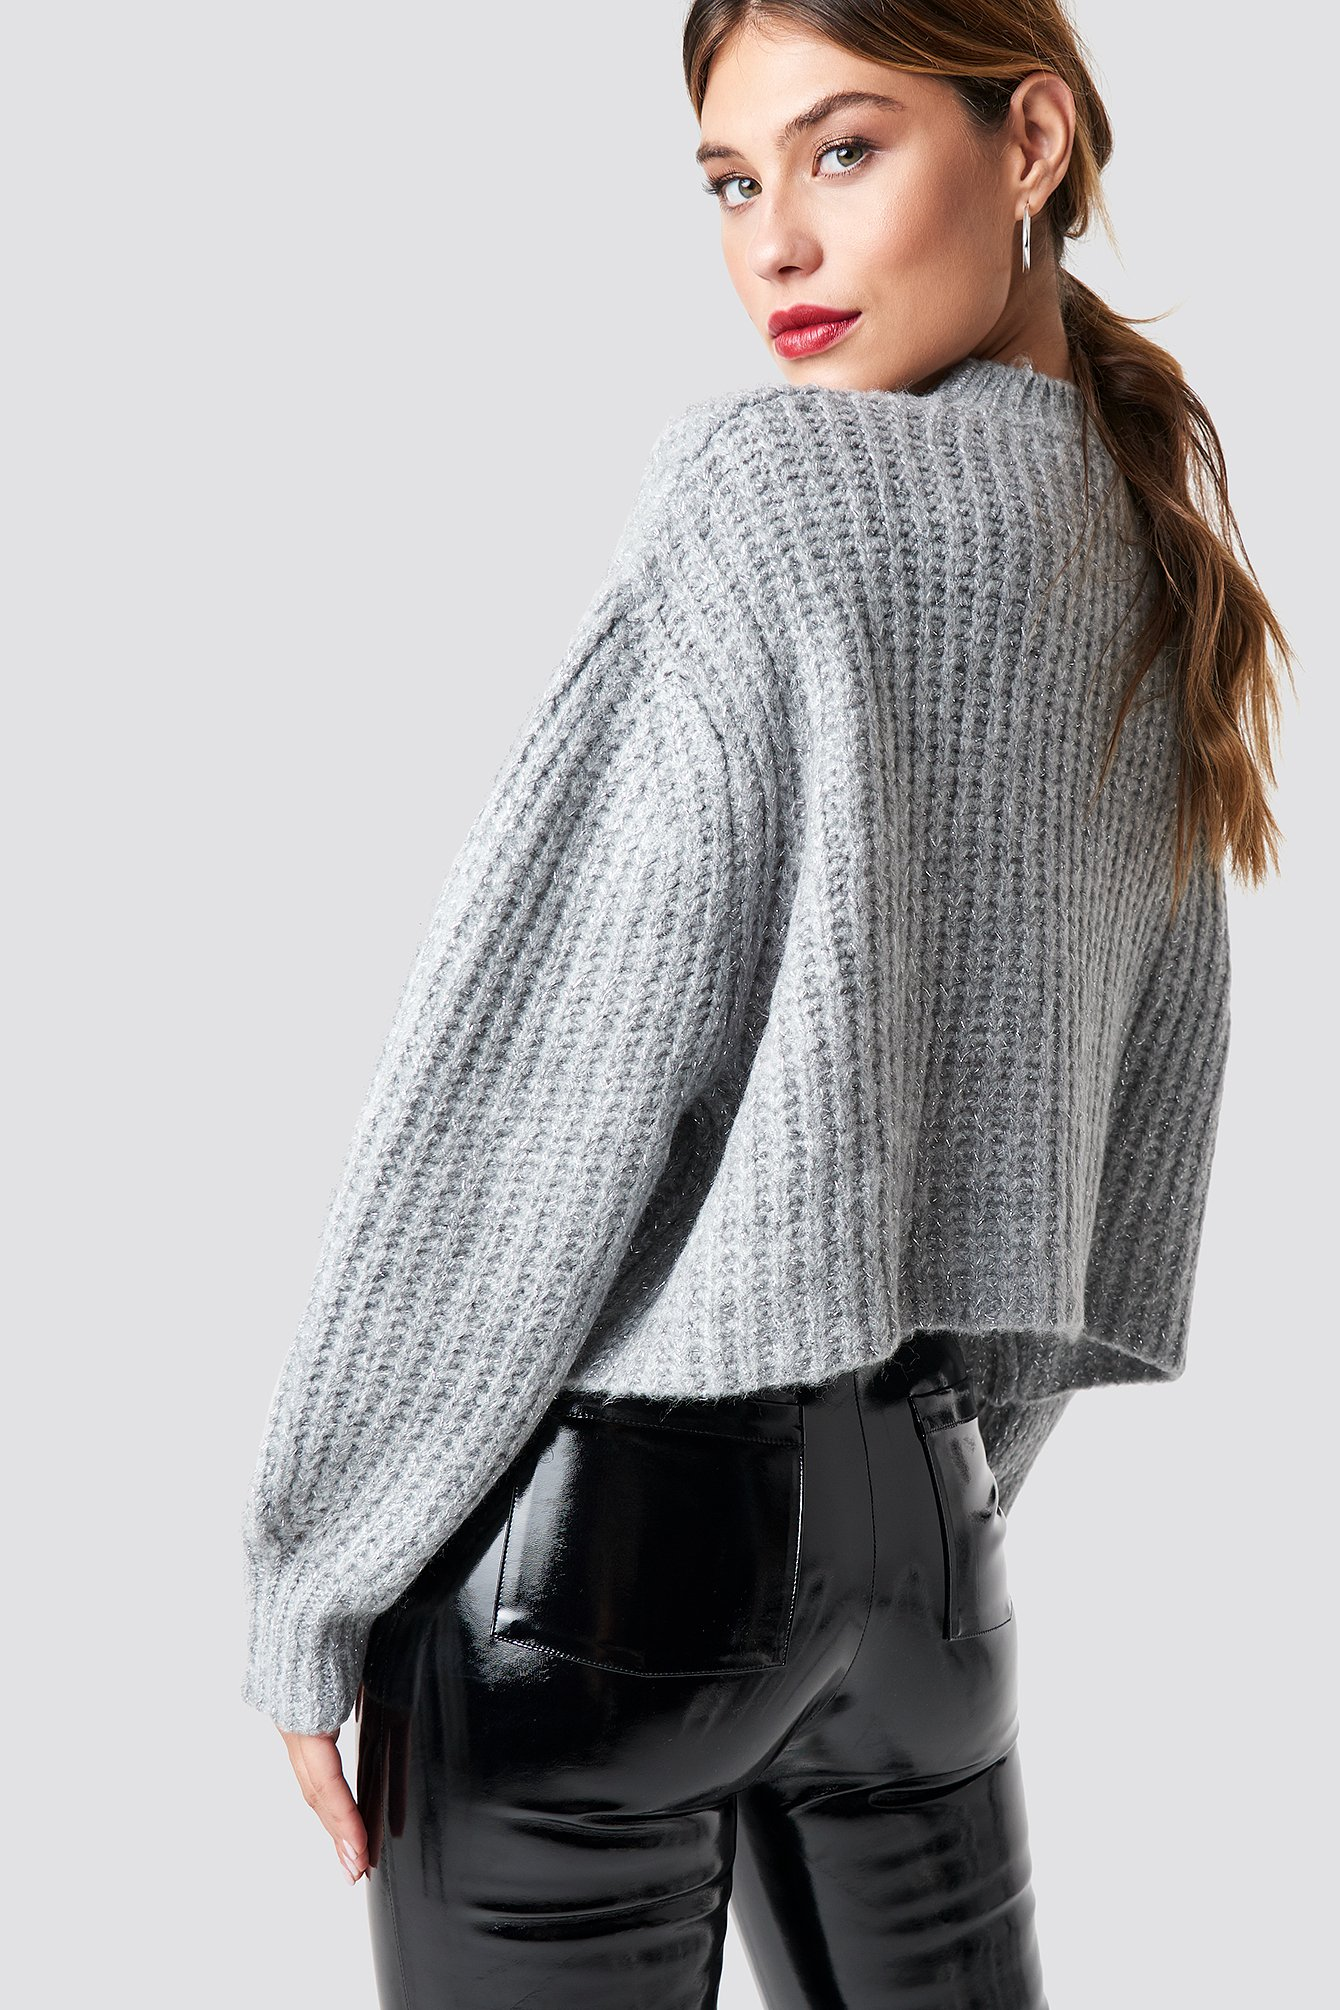 Round Glittery Neck Short Knitted Jumper NA-KD.COM